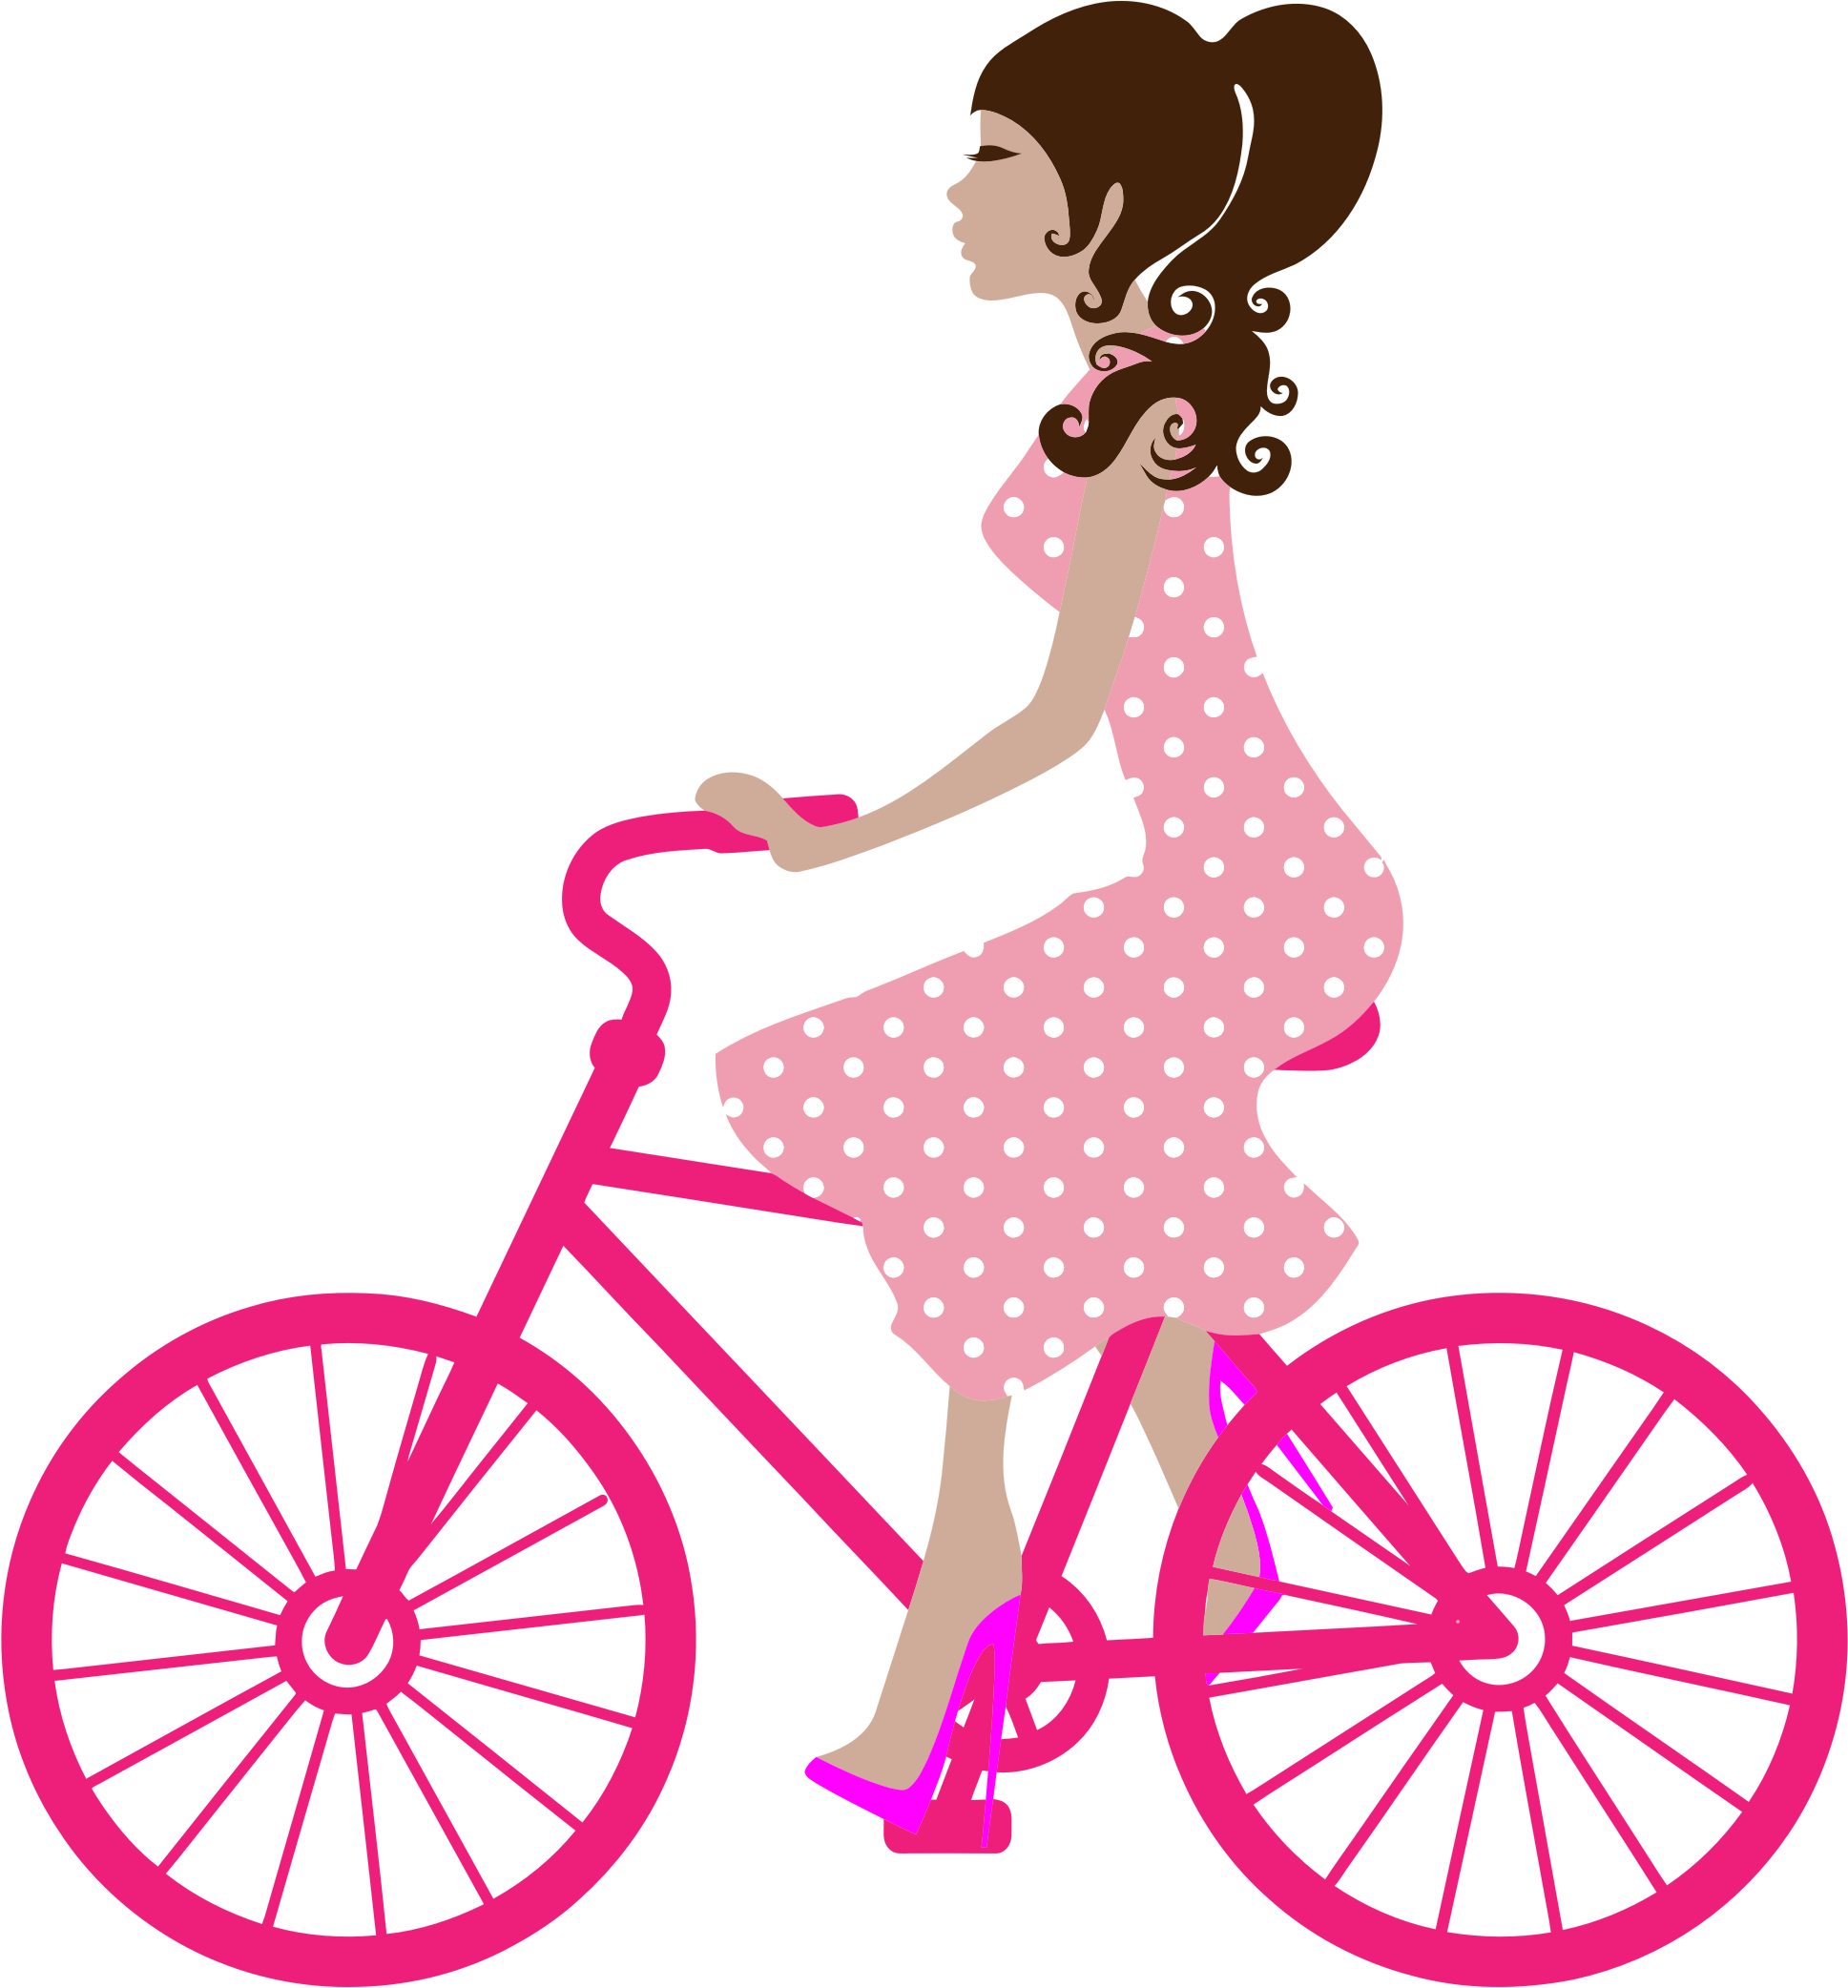 Girl on bike icons. Cycle clipart cute